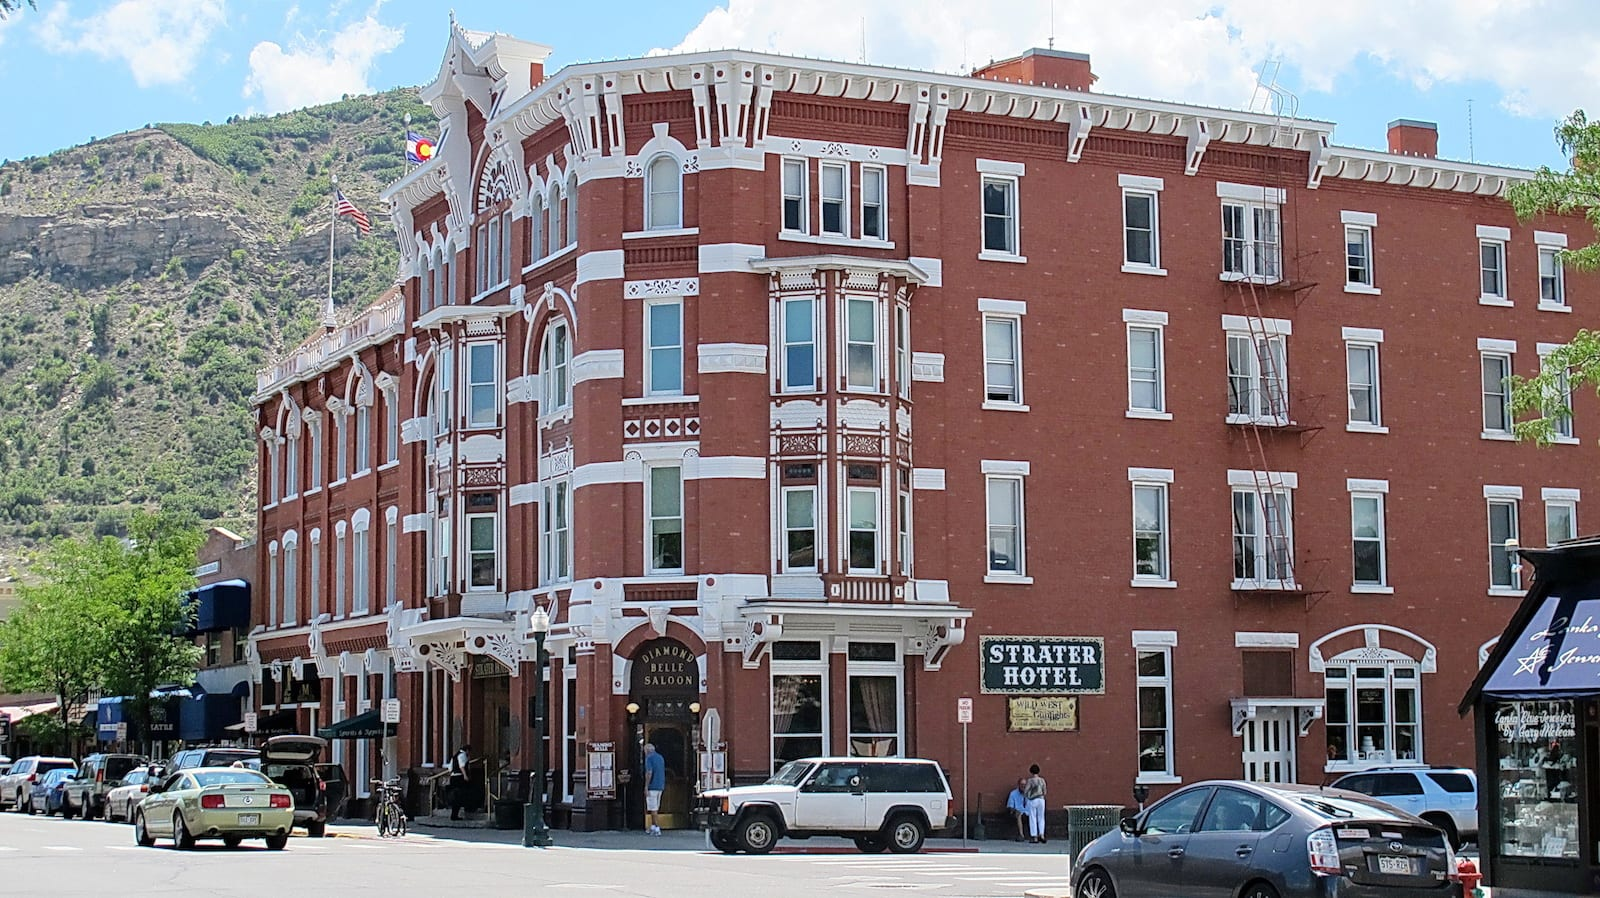 Historic Strater Hotel Durango Colorado